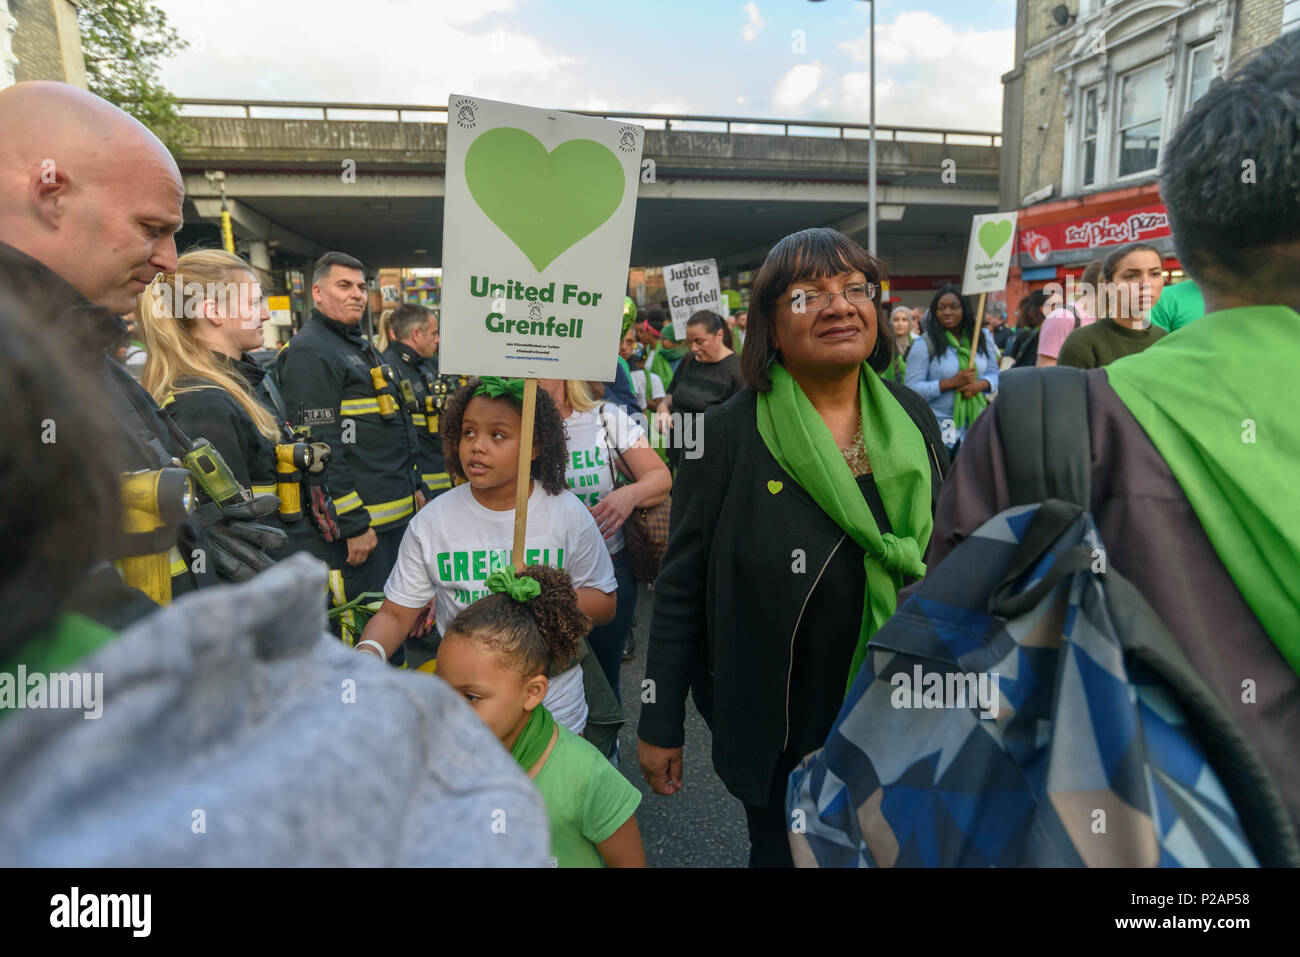 London, UK. 14th June 2018. Shadow Home Secretary Diane Abbot at Ladbroke Grove in the silent walk from close to Grenfell Tower remembering the victims of the disaster on the first anniversary of the disastrous fire which killed 72 and left survivors traumatised. Many of those made homeless by the fire are still in temporary accomodation a year later despite promises mde by Theresa May and Kensington & Chelsea council, who many fell have failed the local community both before and after the fire.  call for just Credit: Peter Marshall/Alamy Live News - Stock Image